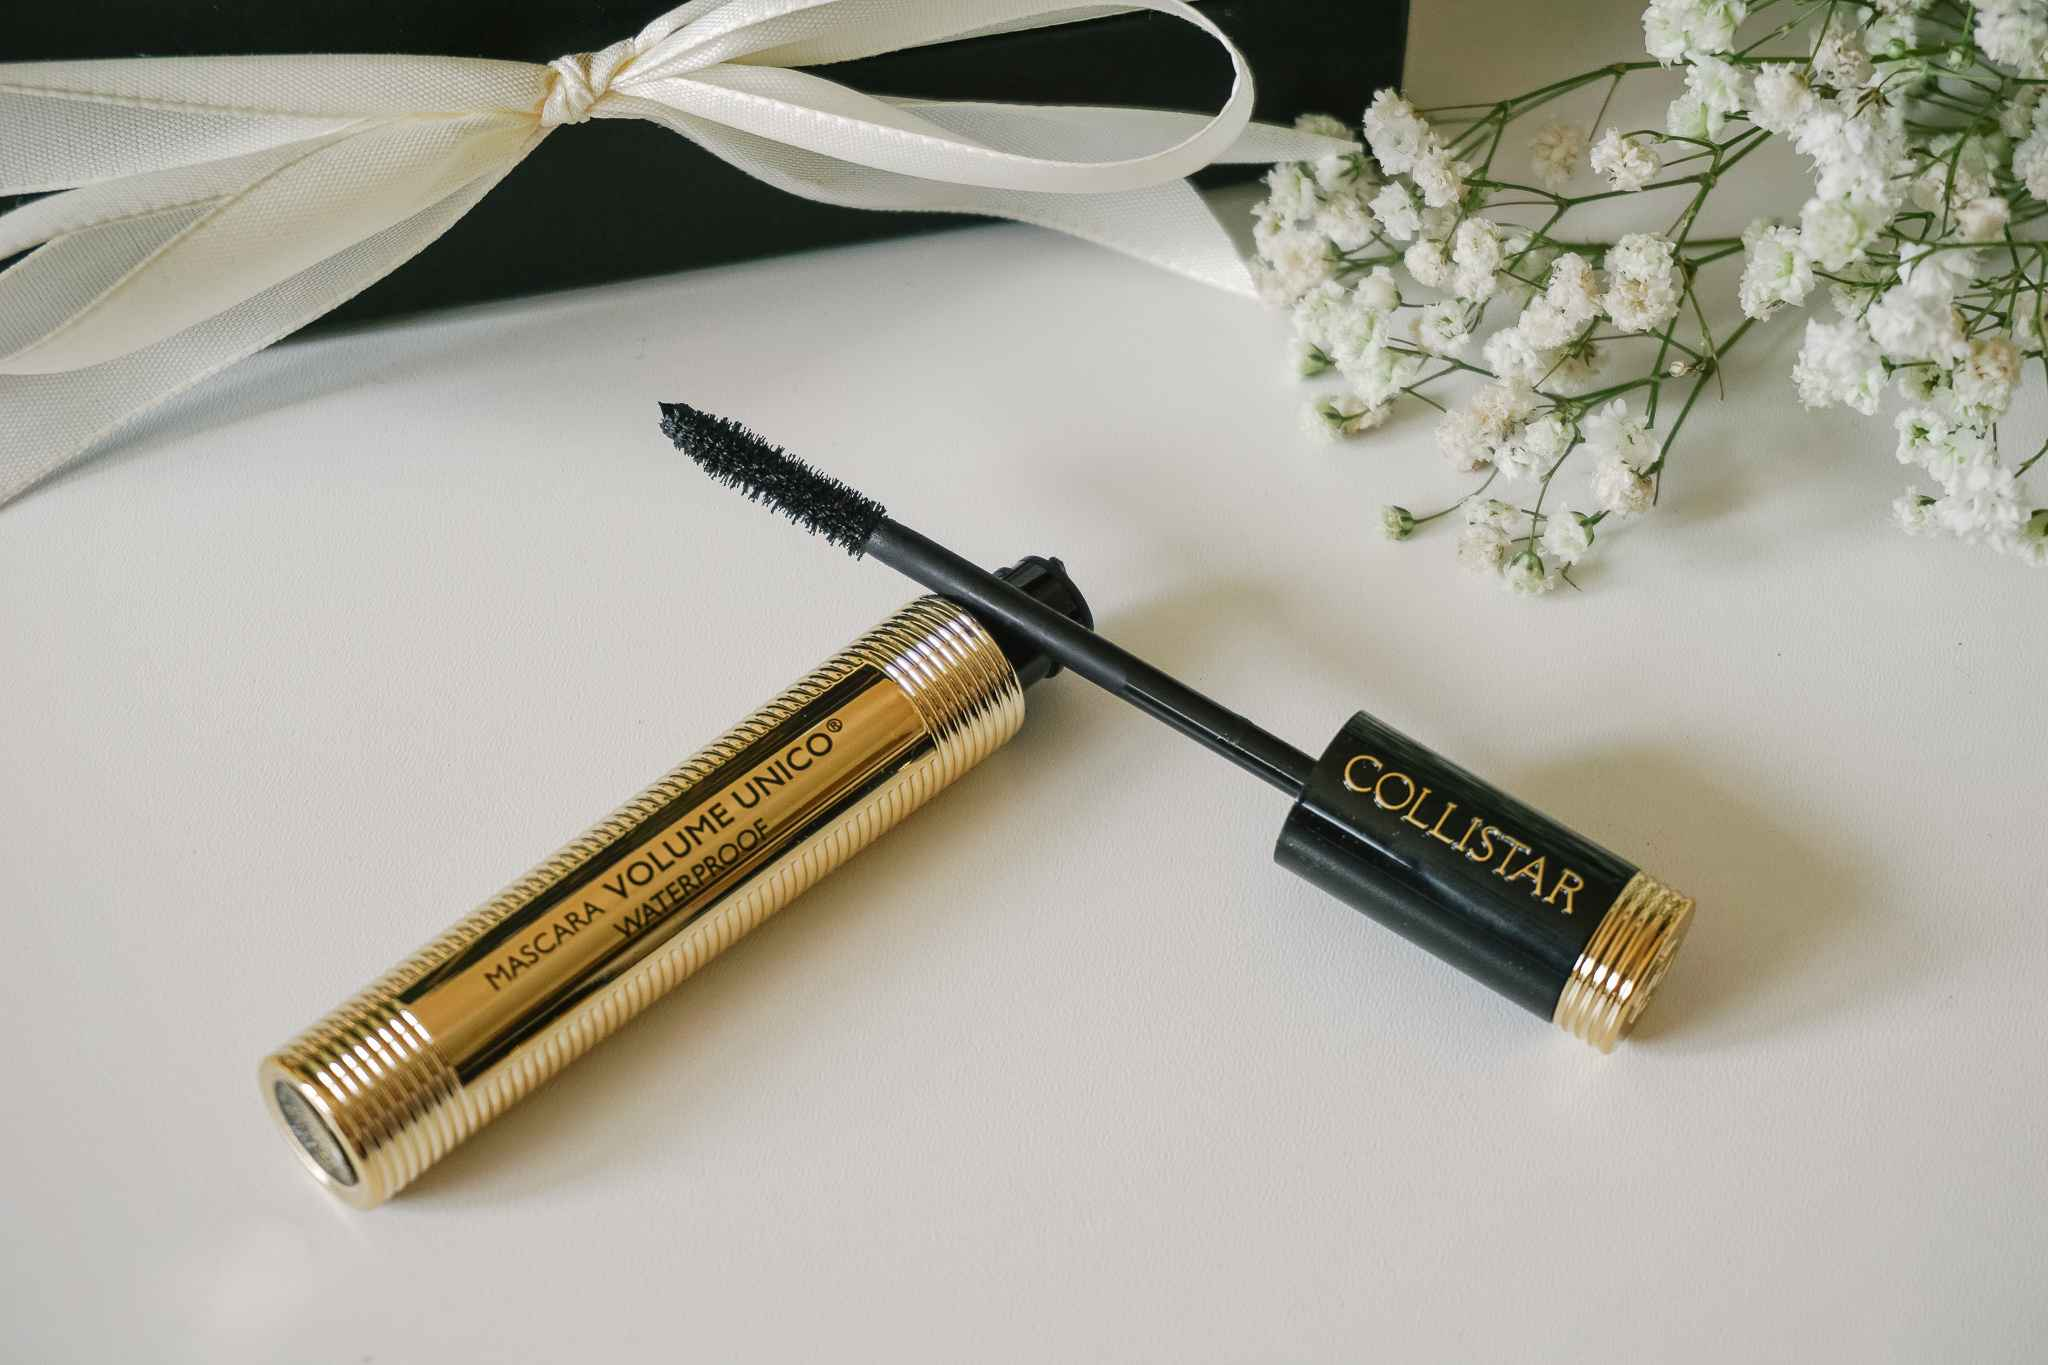 Collistar Mascara Volume unico Warerproof